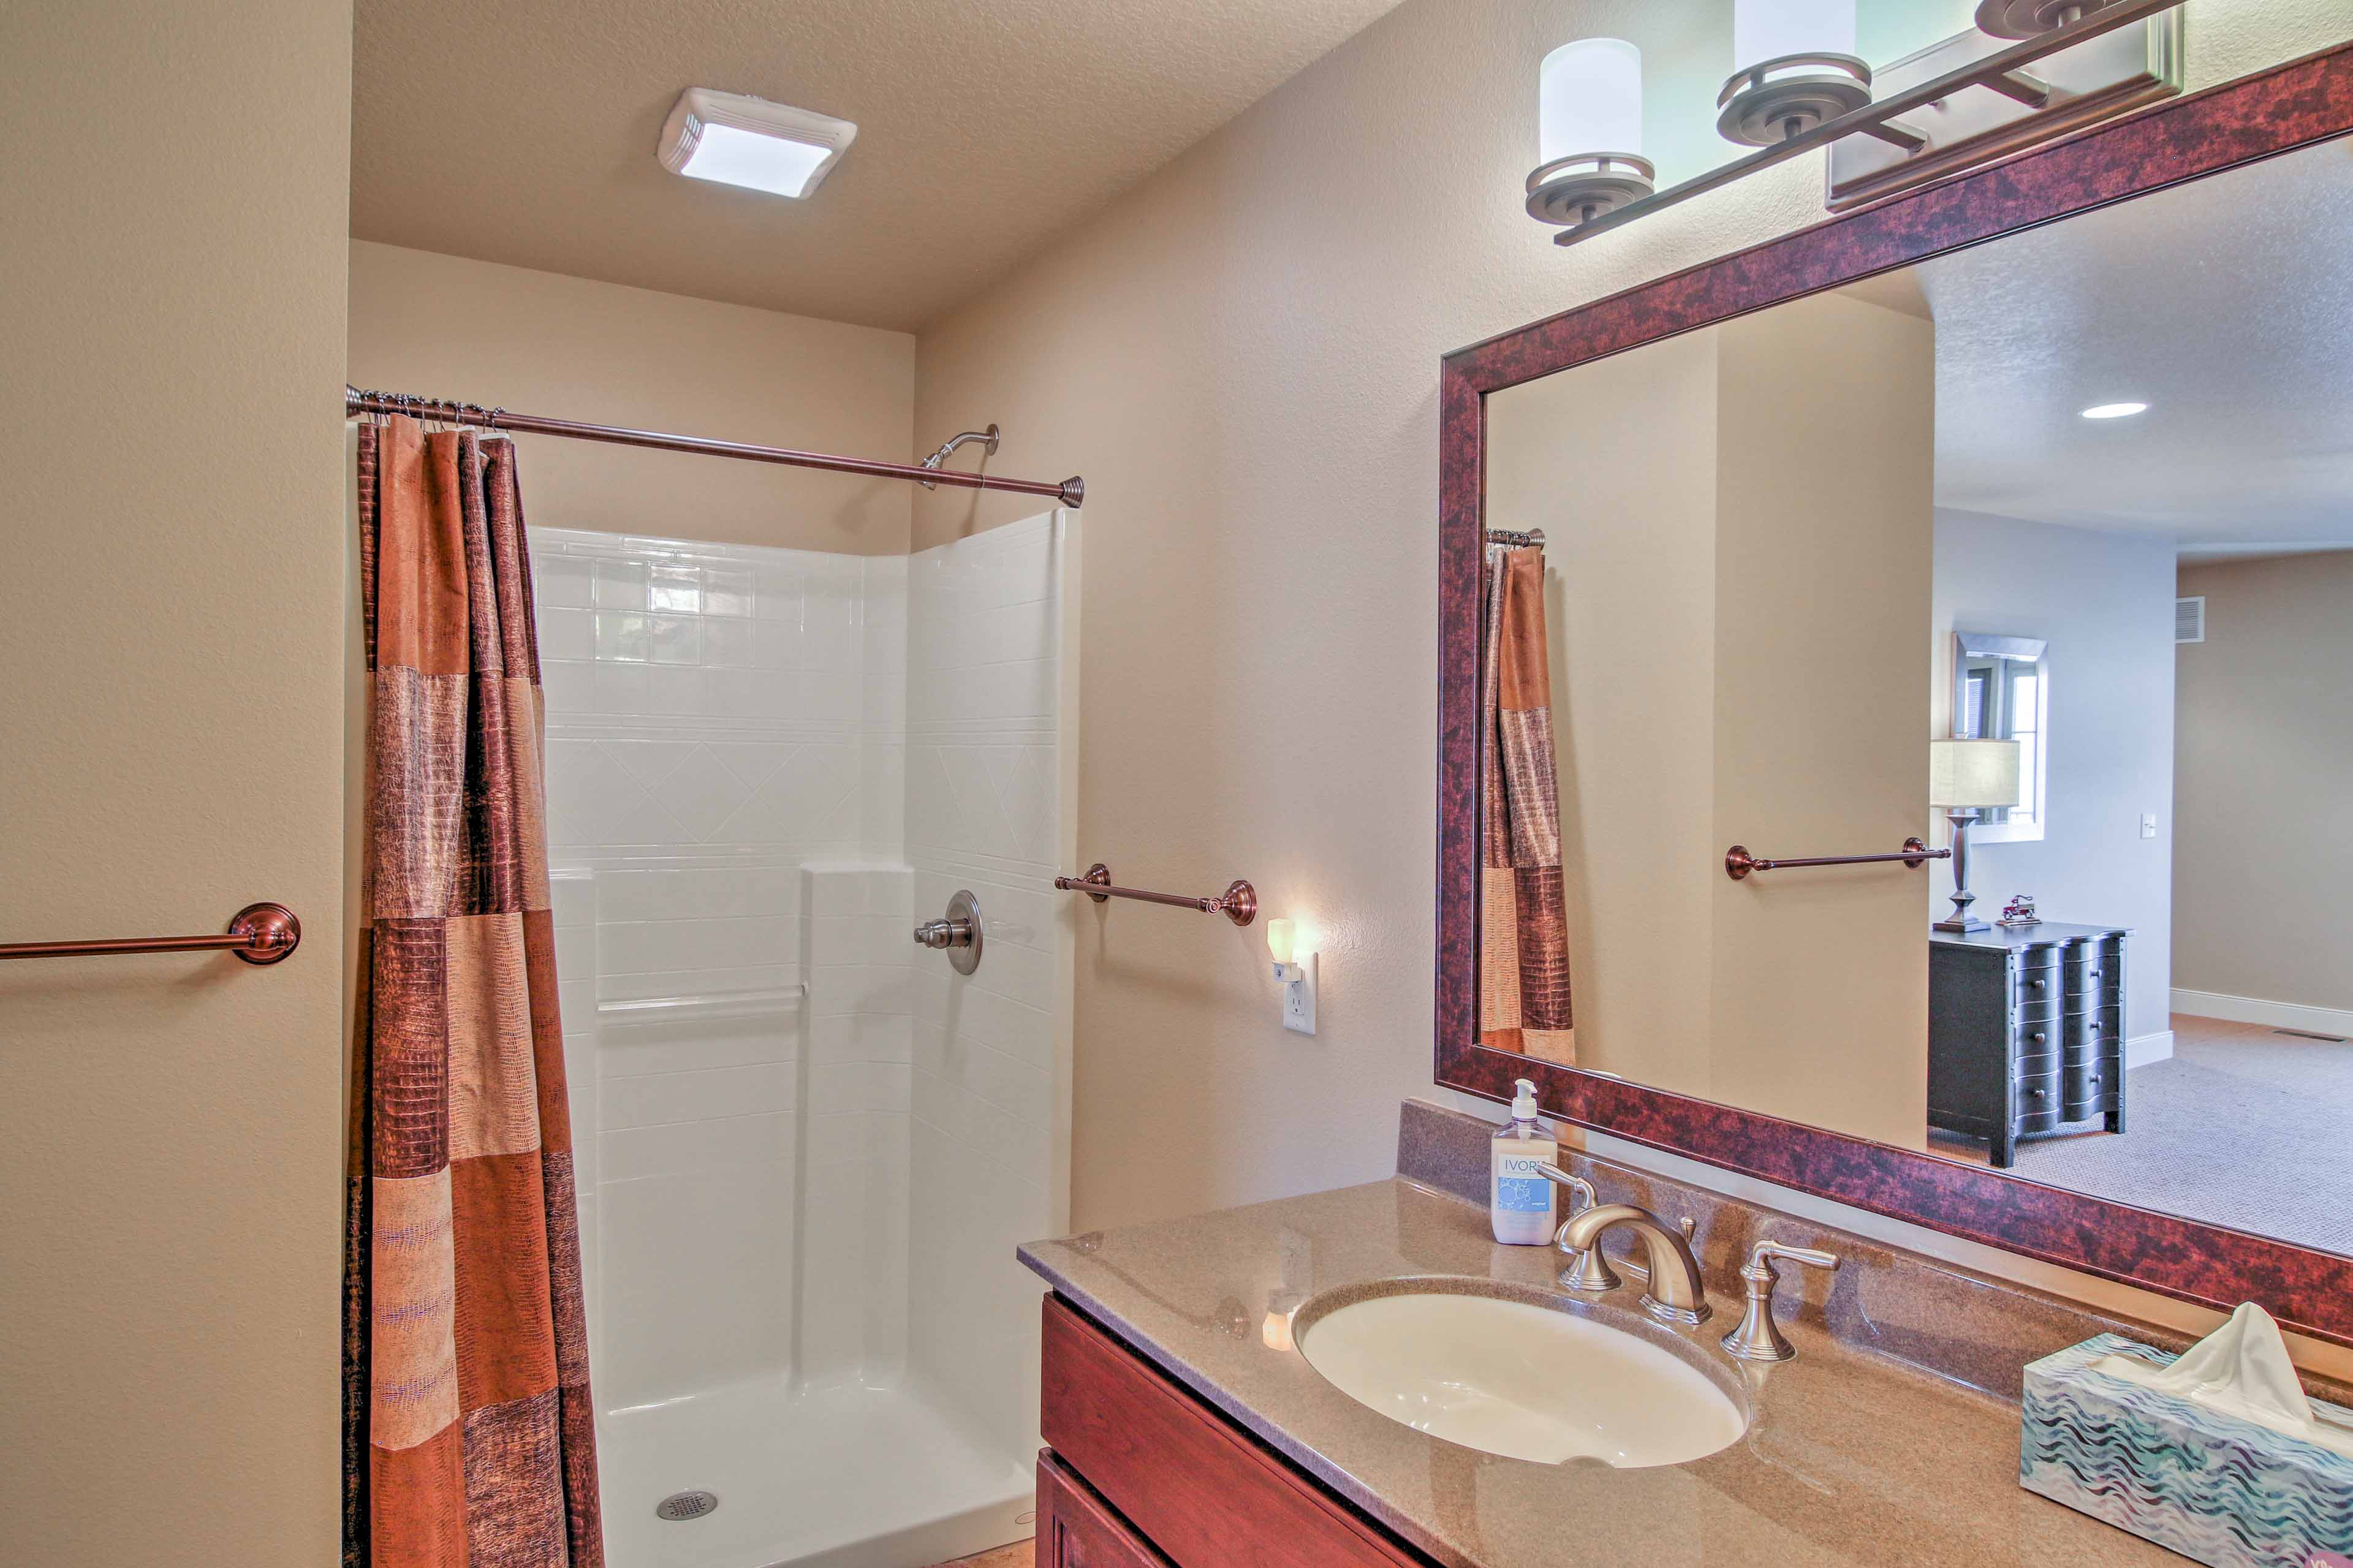 This en-suite bathroom is equipped with a walk-in shower and single vanity.